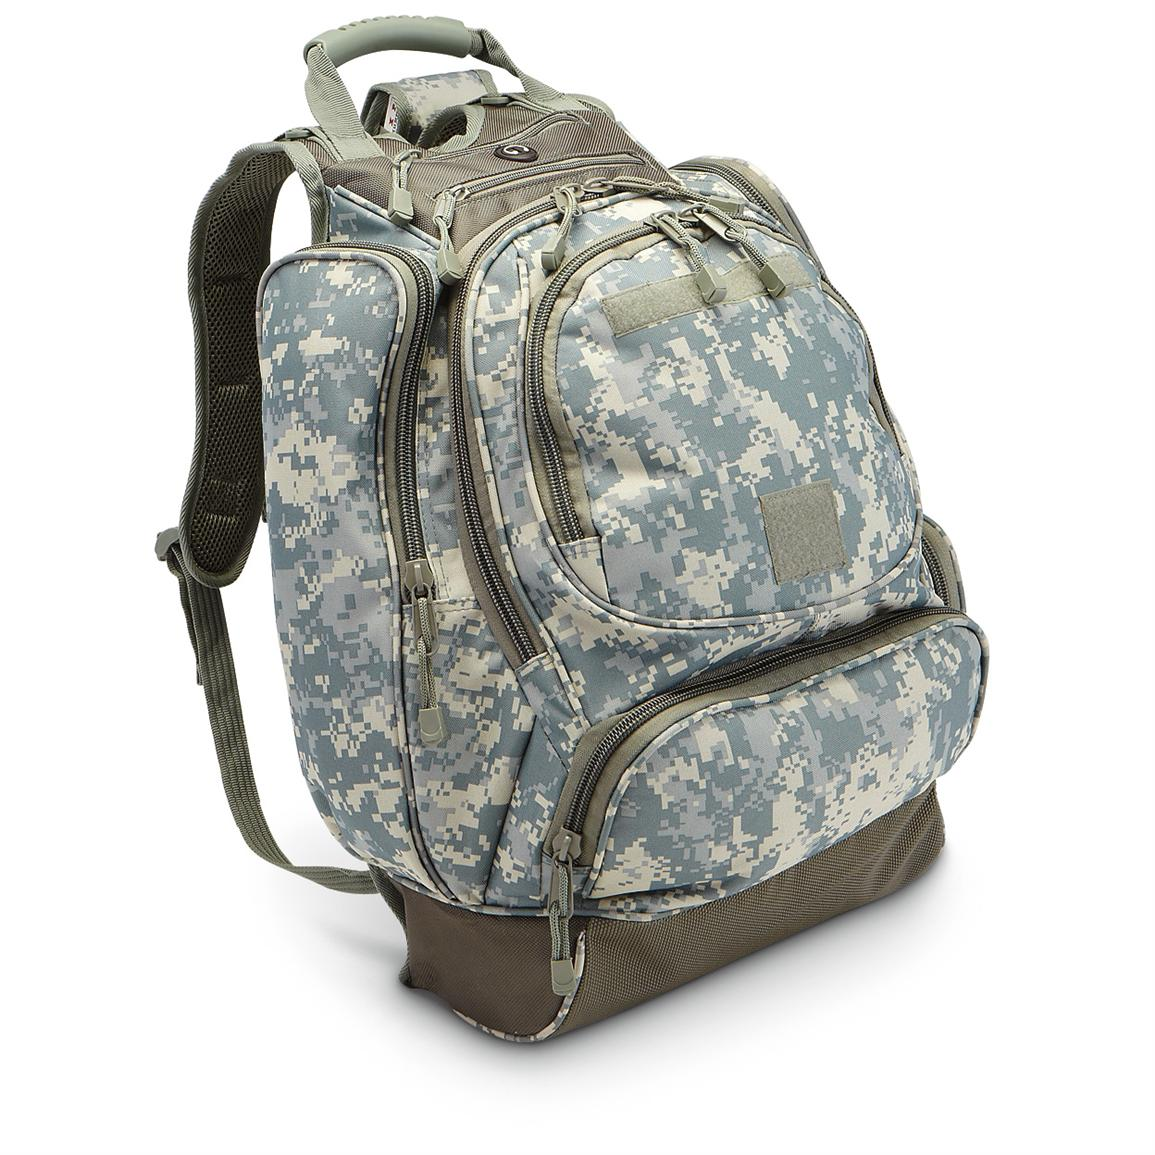 Military surplus-style Backpack, ACU Digital Camo; 2,730-cu. in. capacity; Built-tough to pack your stuff!